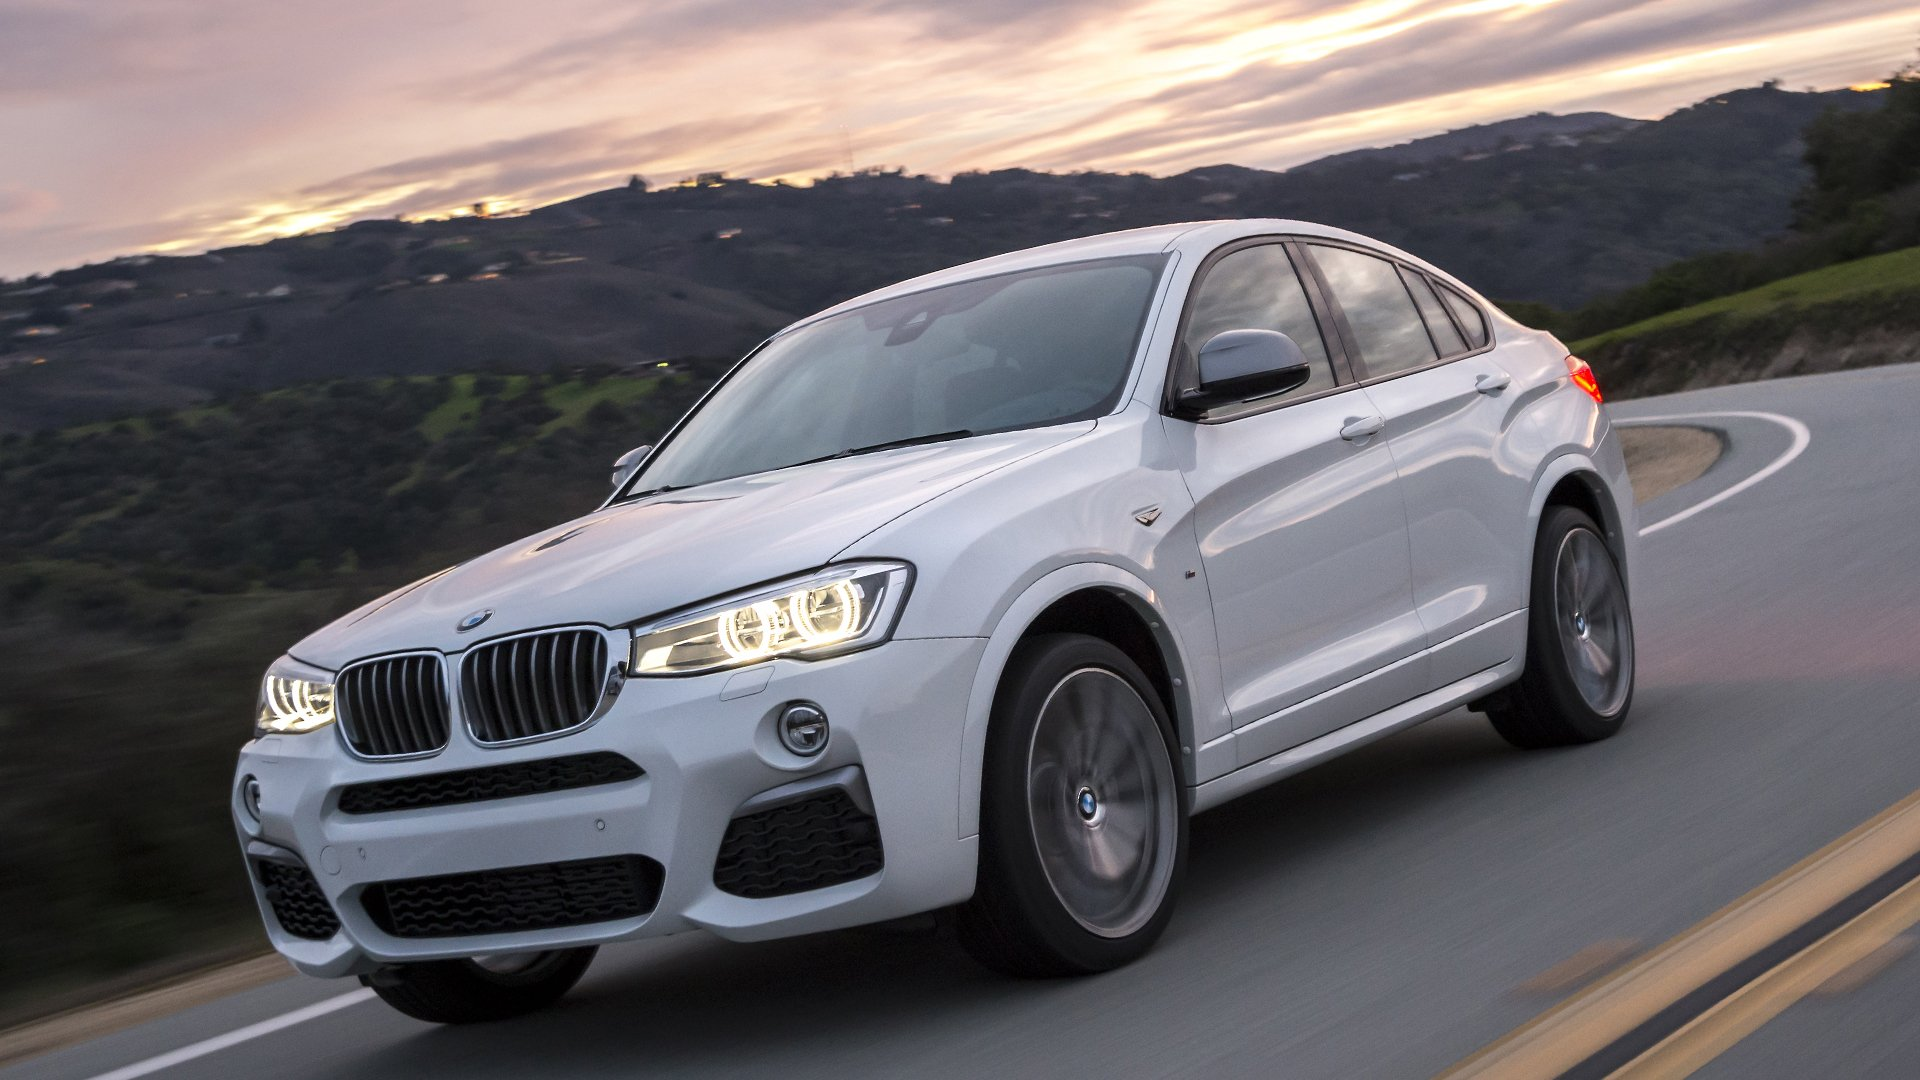 New 2019 BMW X4 Exterior Changes